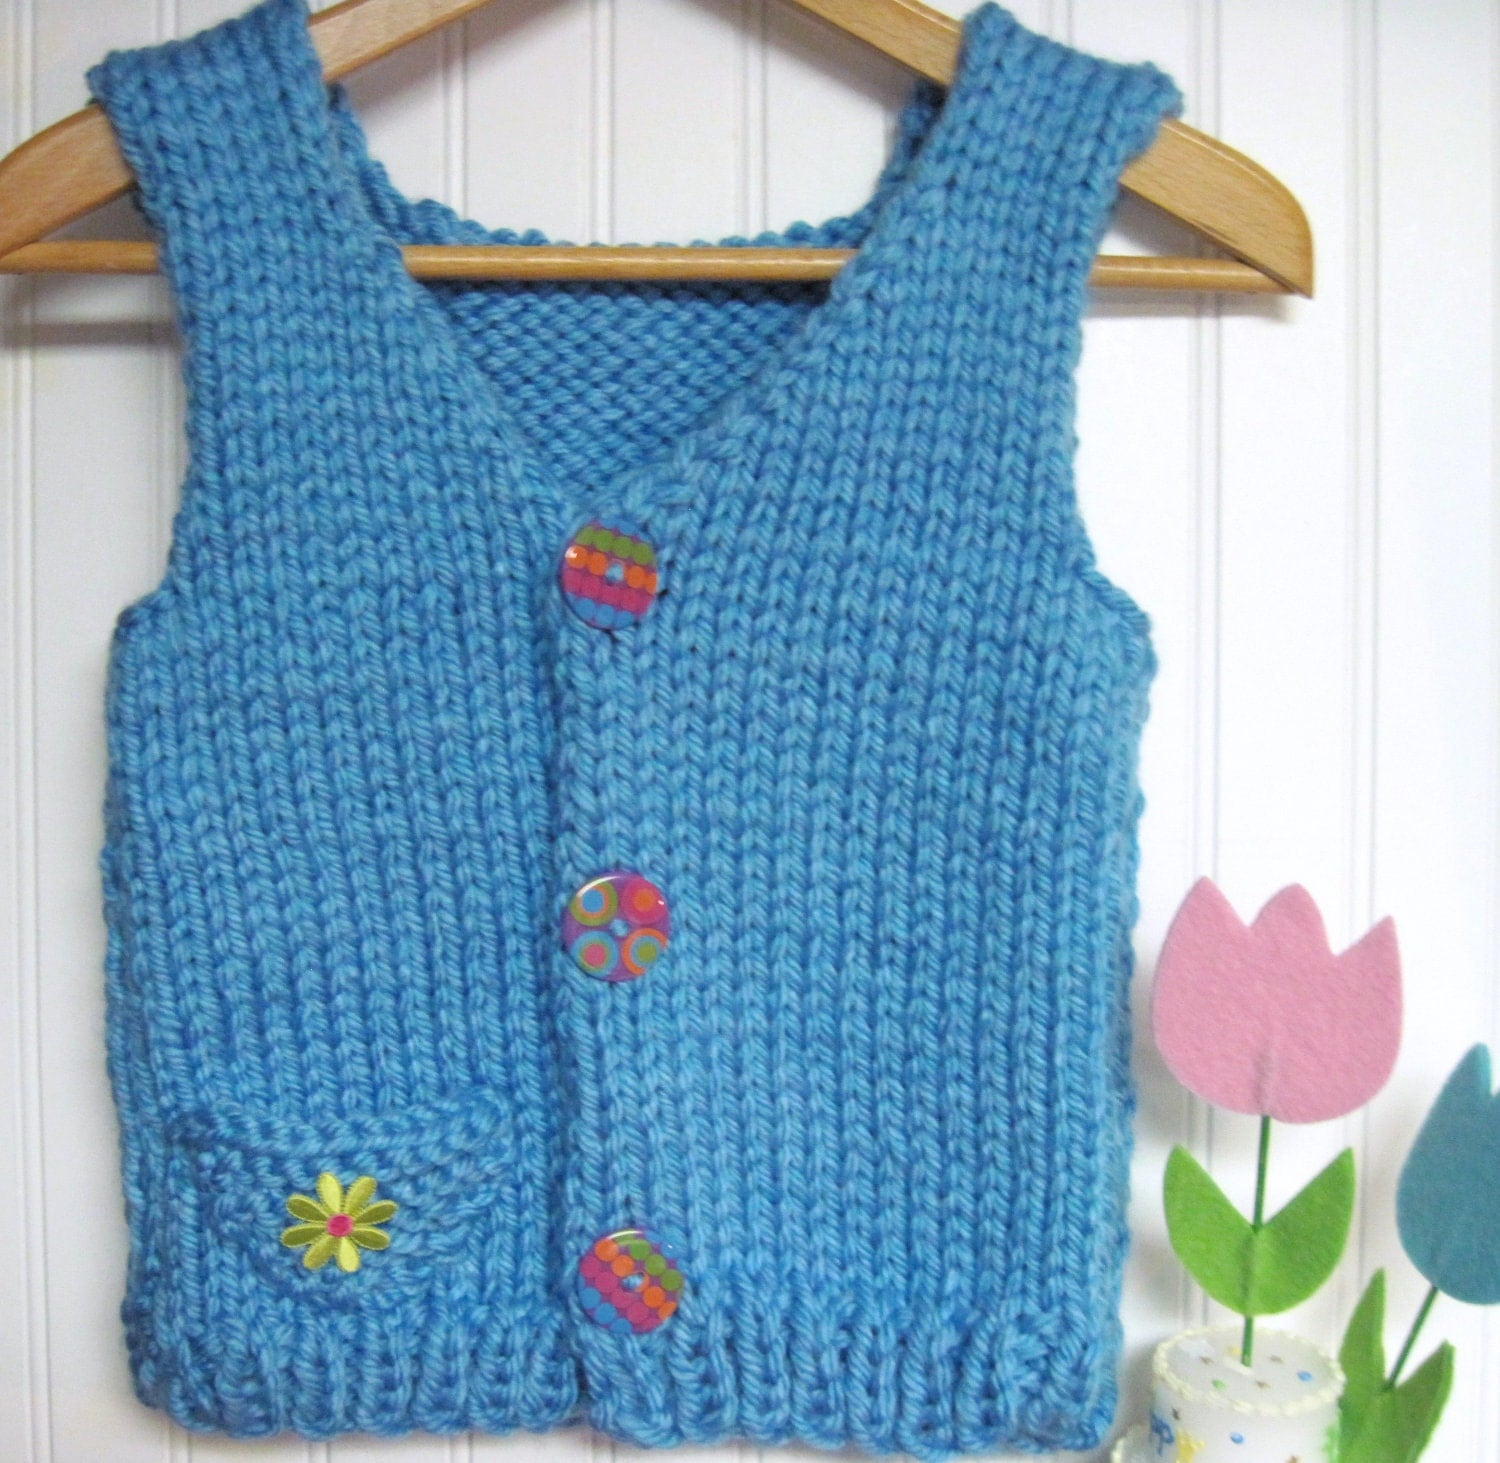 Vest Knitting Pattern For Children : Childs Vest Bulky Yarn Knitting Pattern for 5 to by LaurelArts